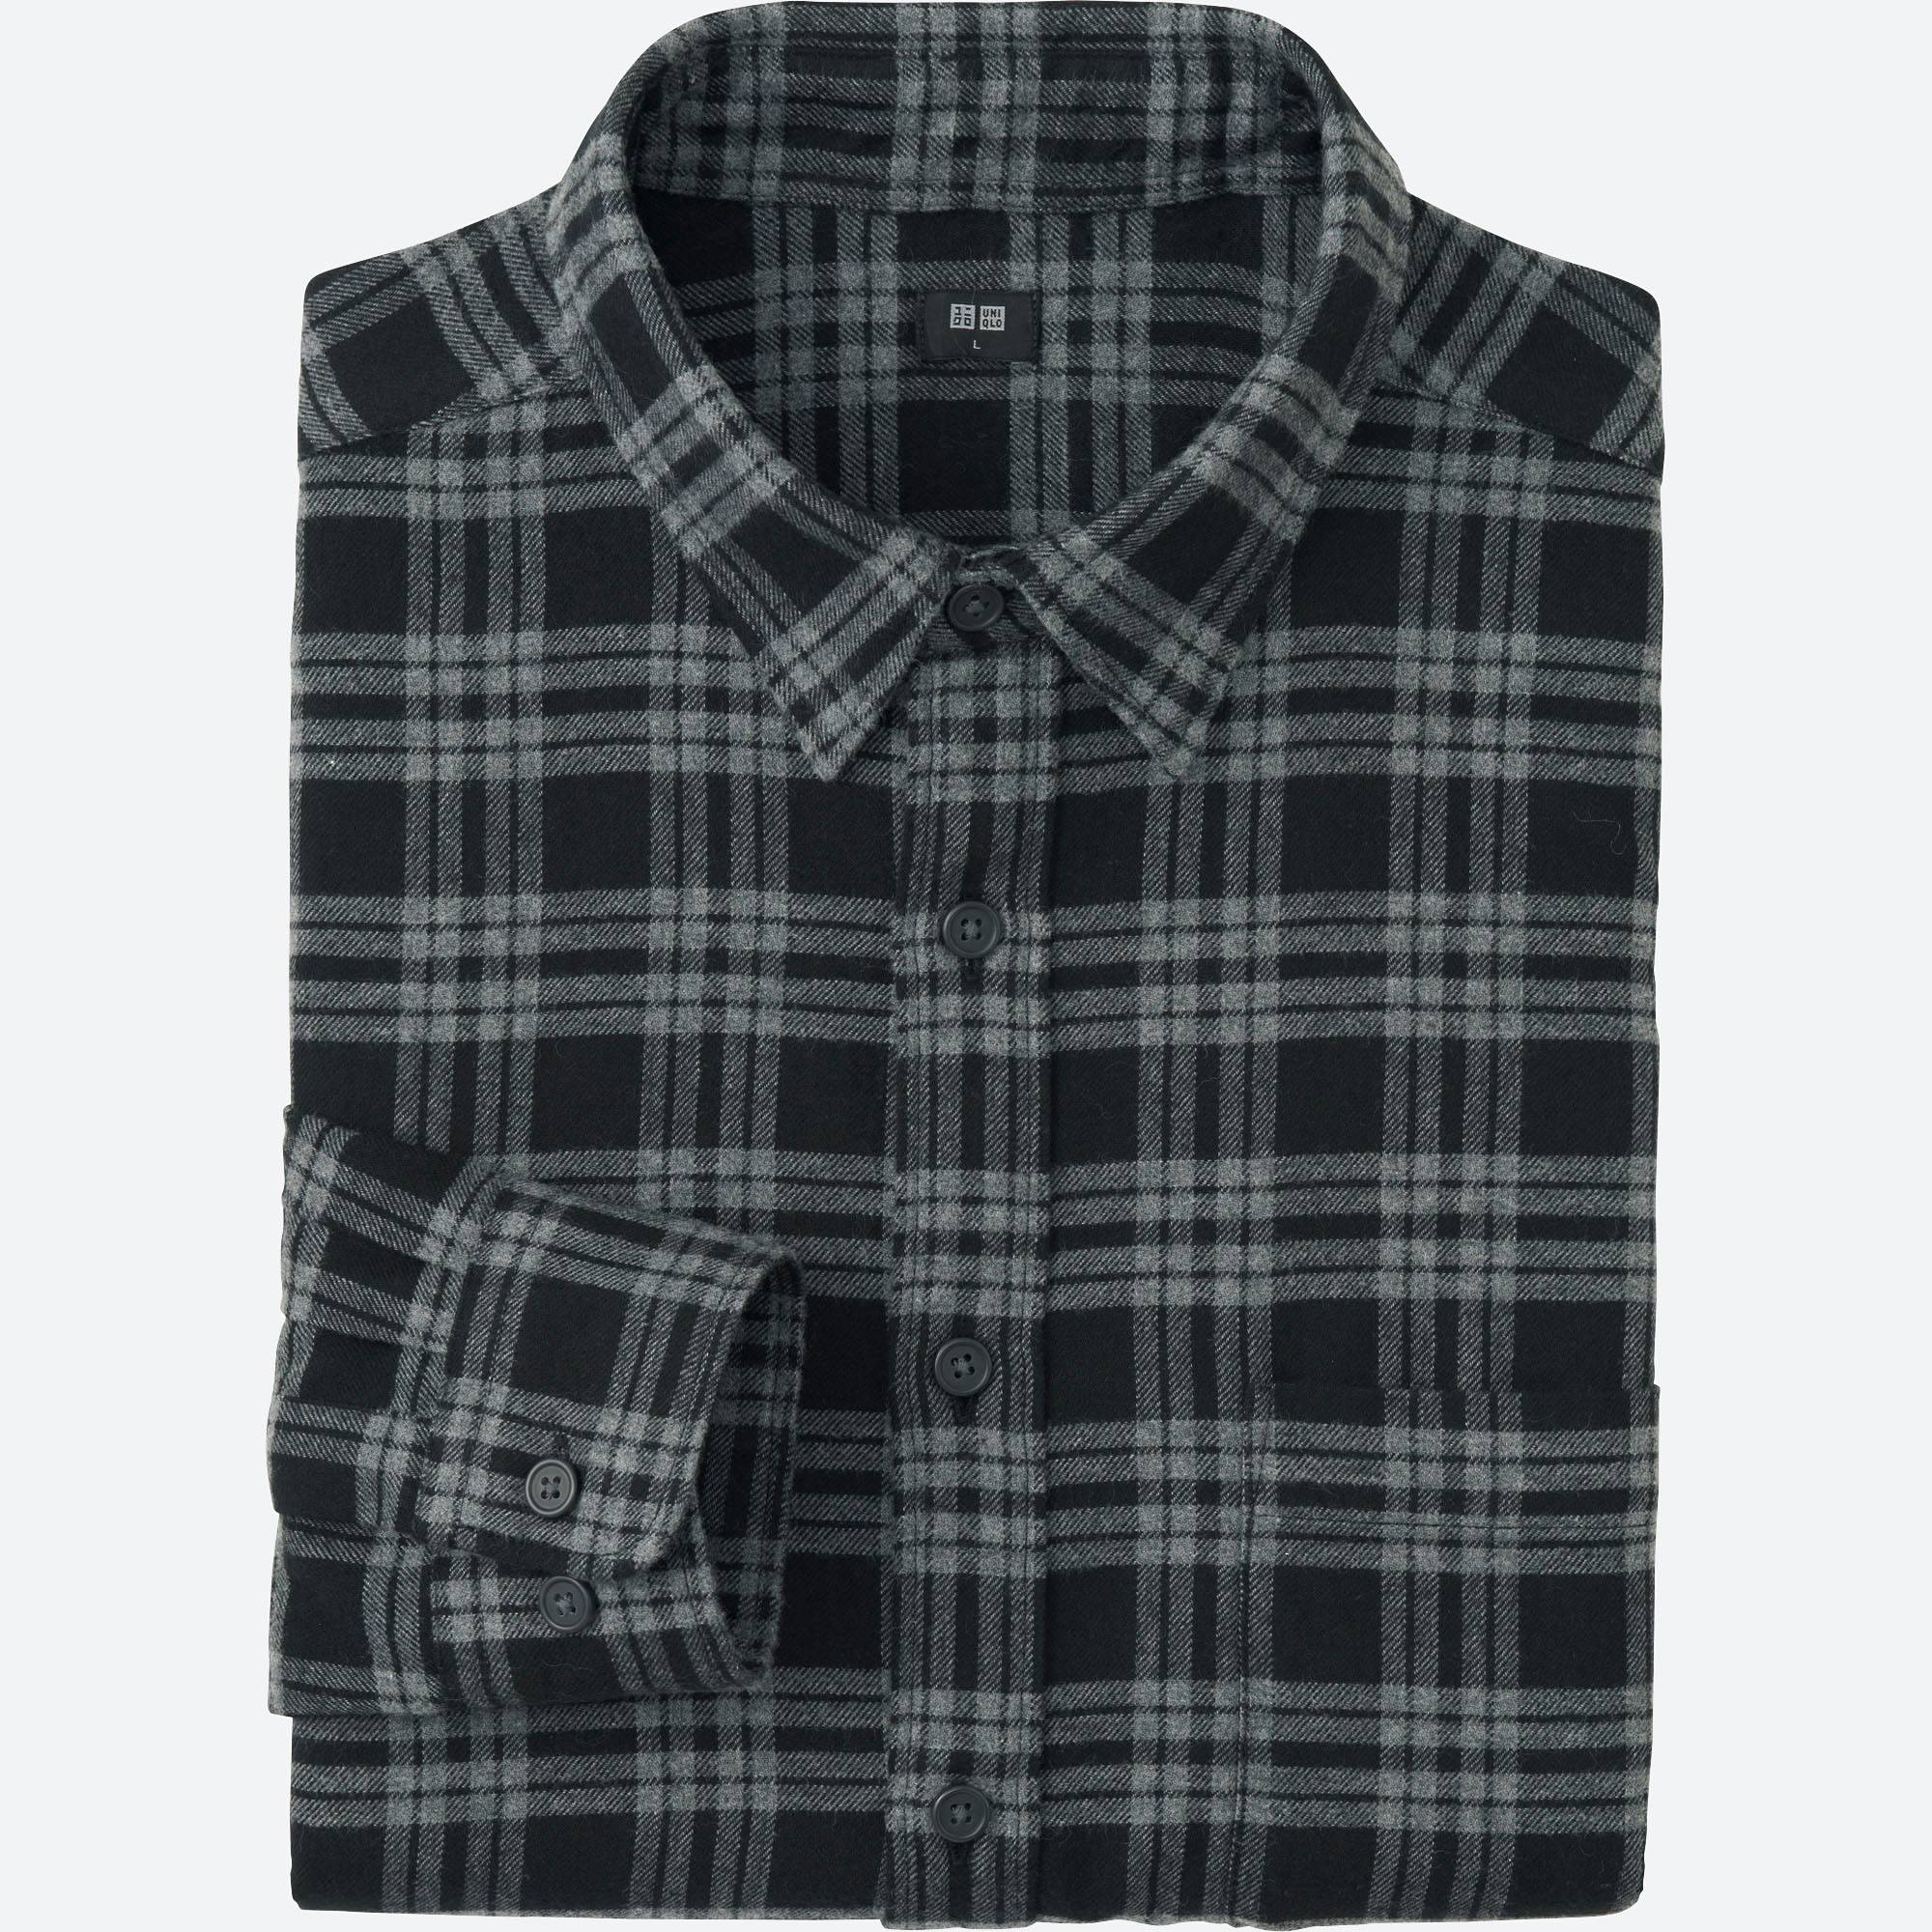 MEN FLANNEL CHECKED LONG SLEEVE SHIRT | UNIQLO US